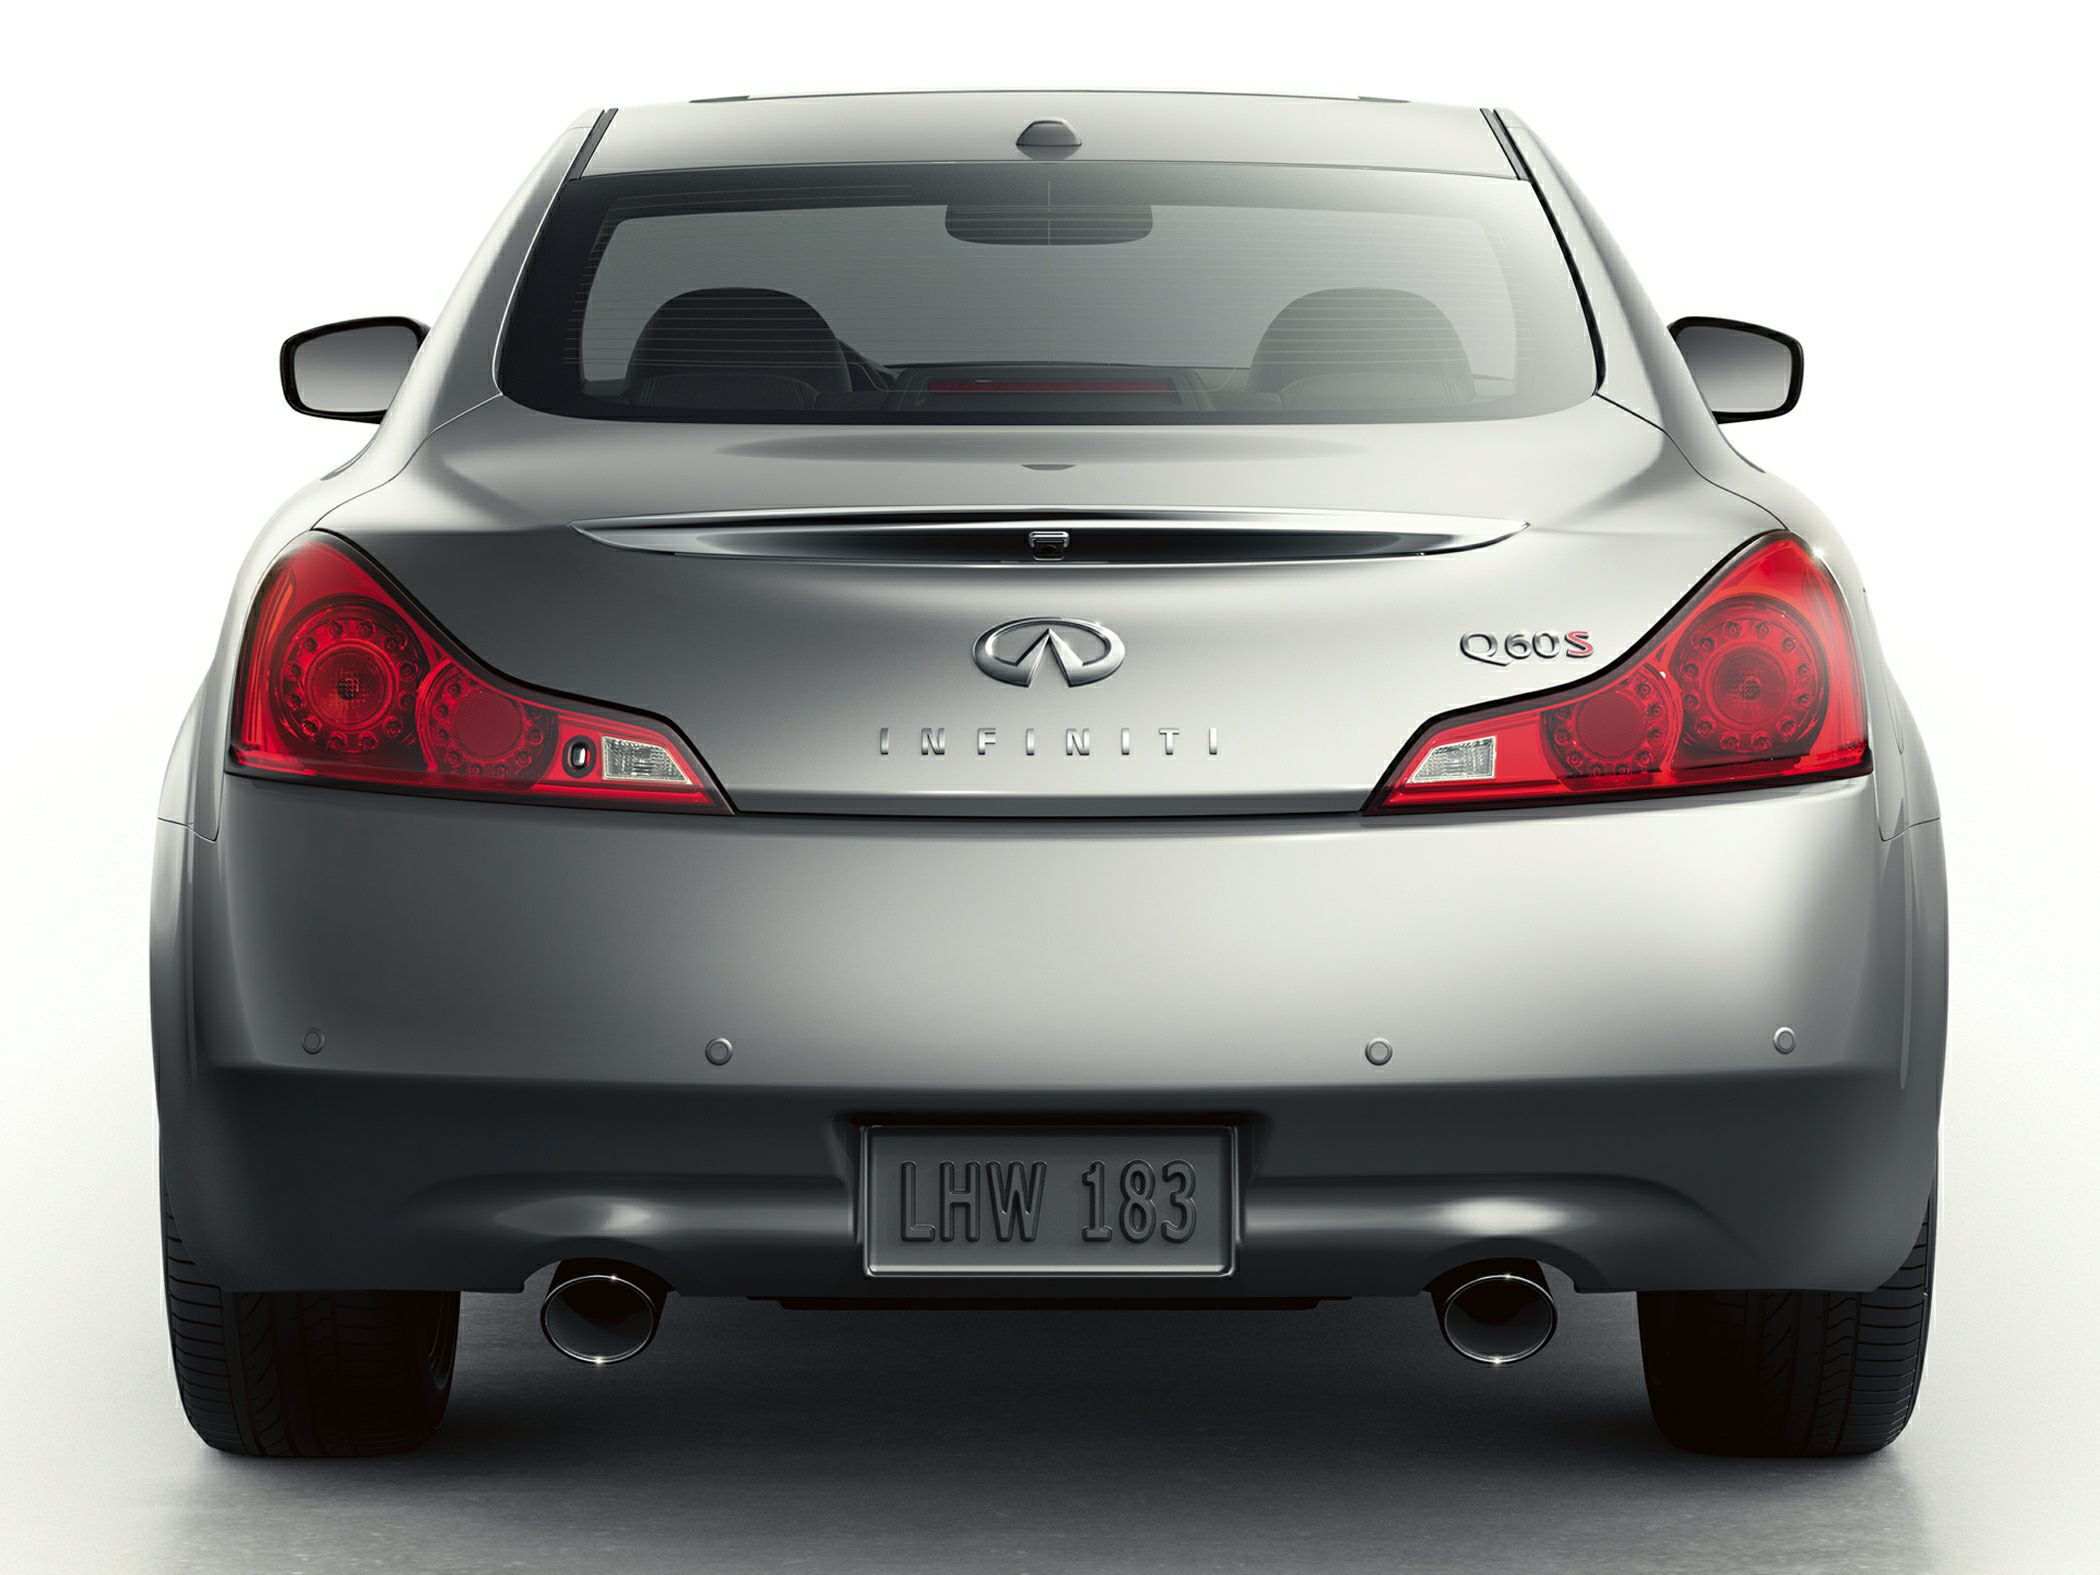 2014 infiniti q60 coupe information and photos momentcar. Black Bedroom Furniture Sets. Home Design Ideas